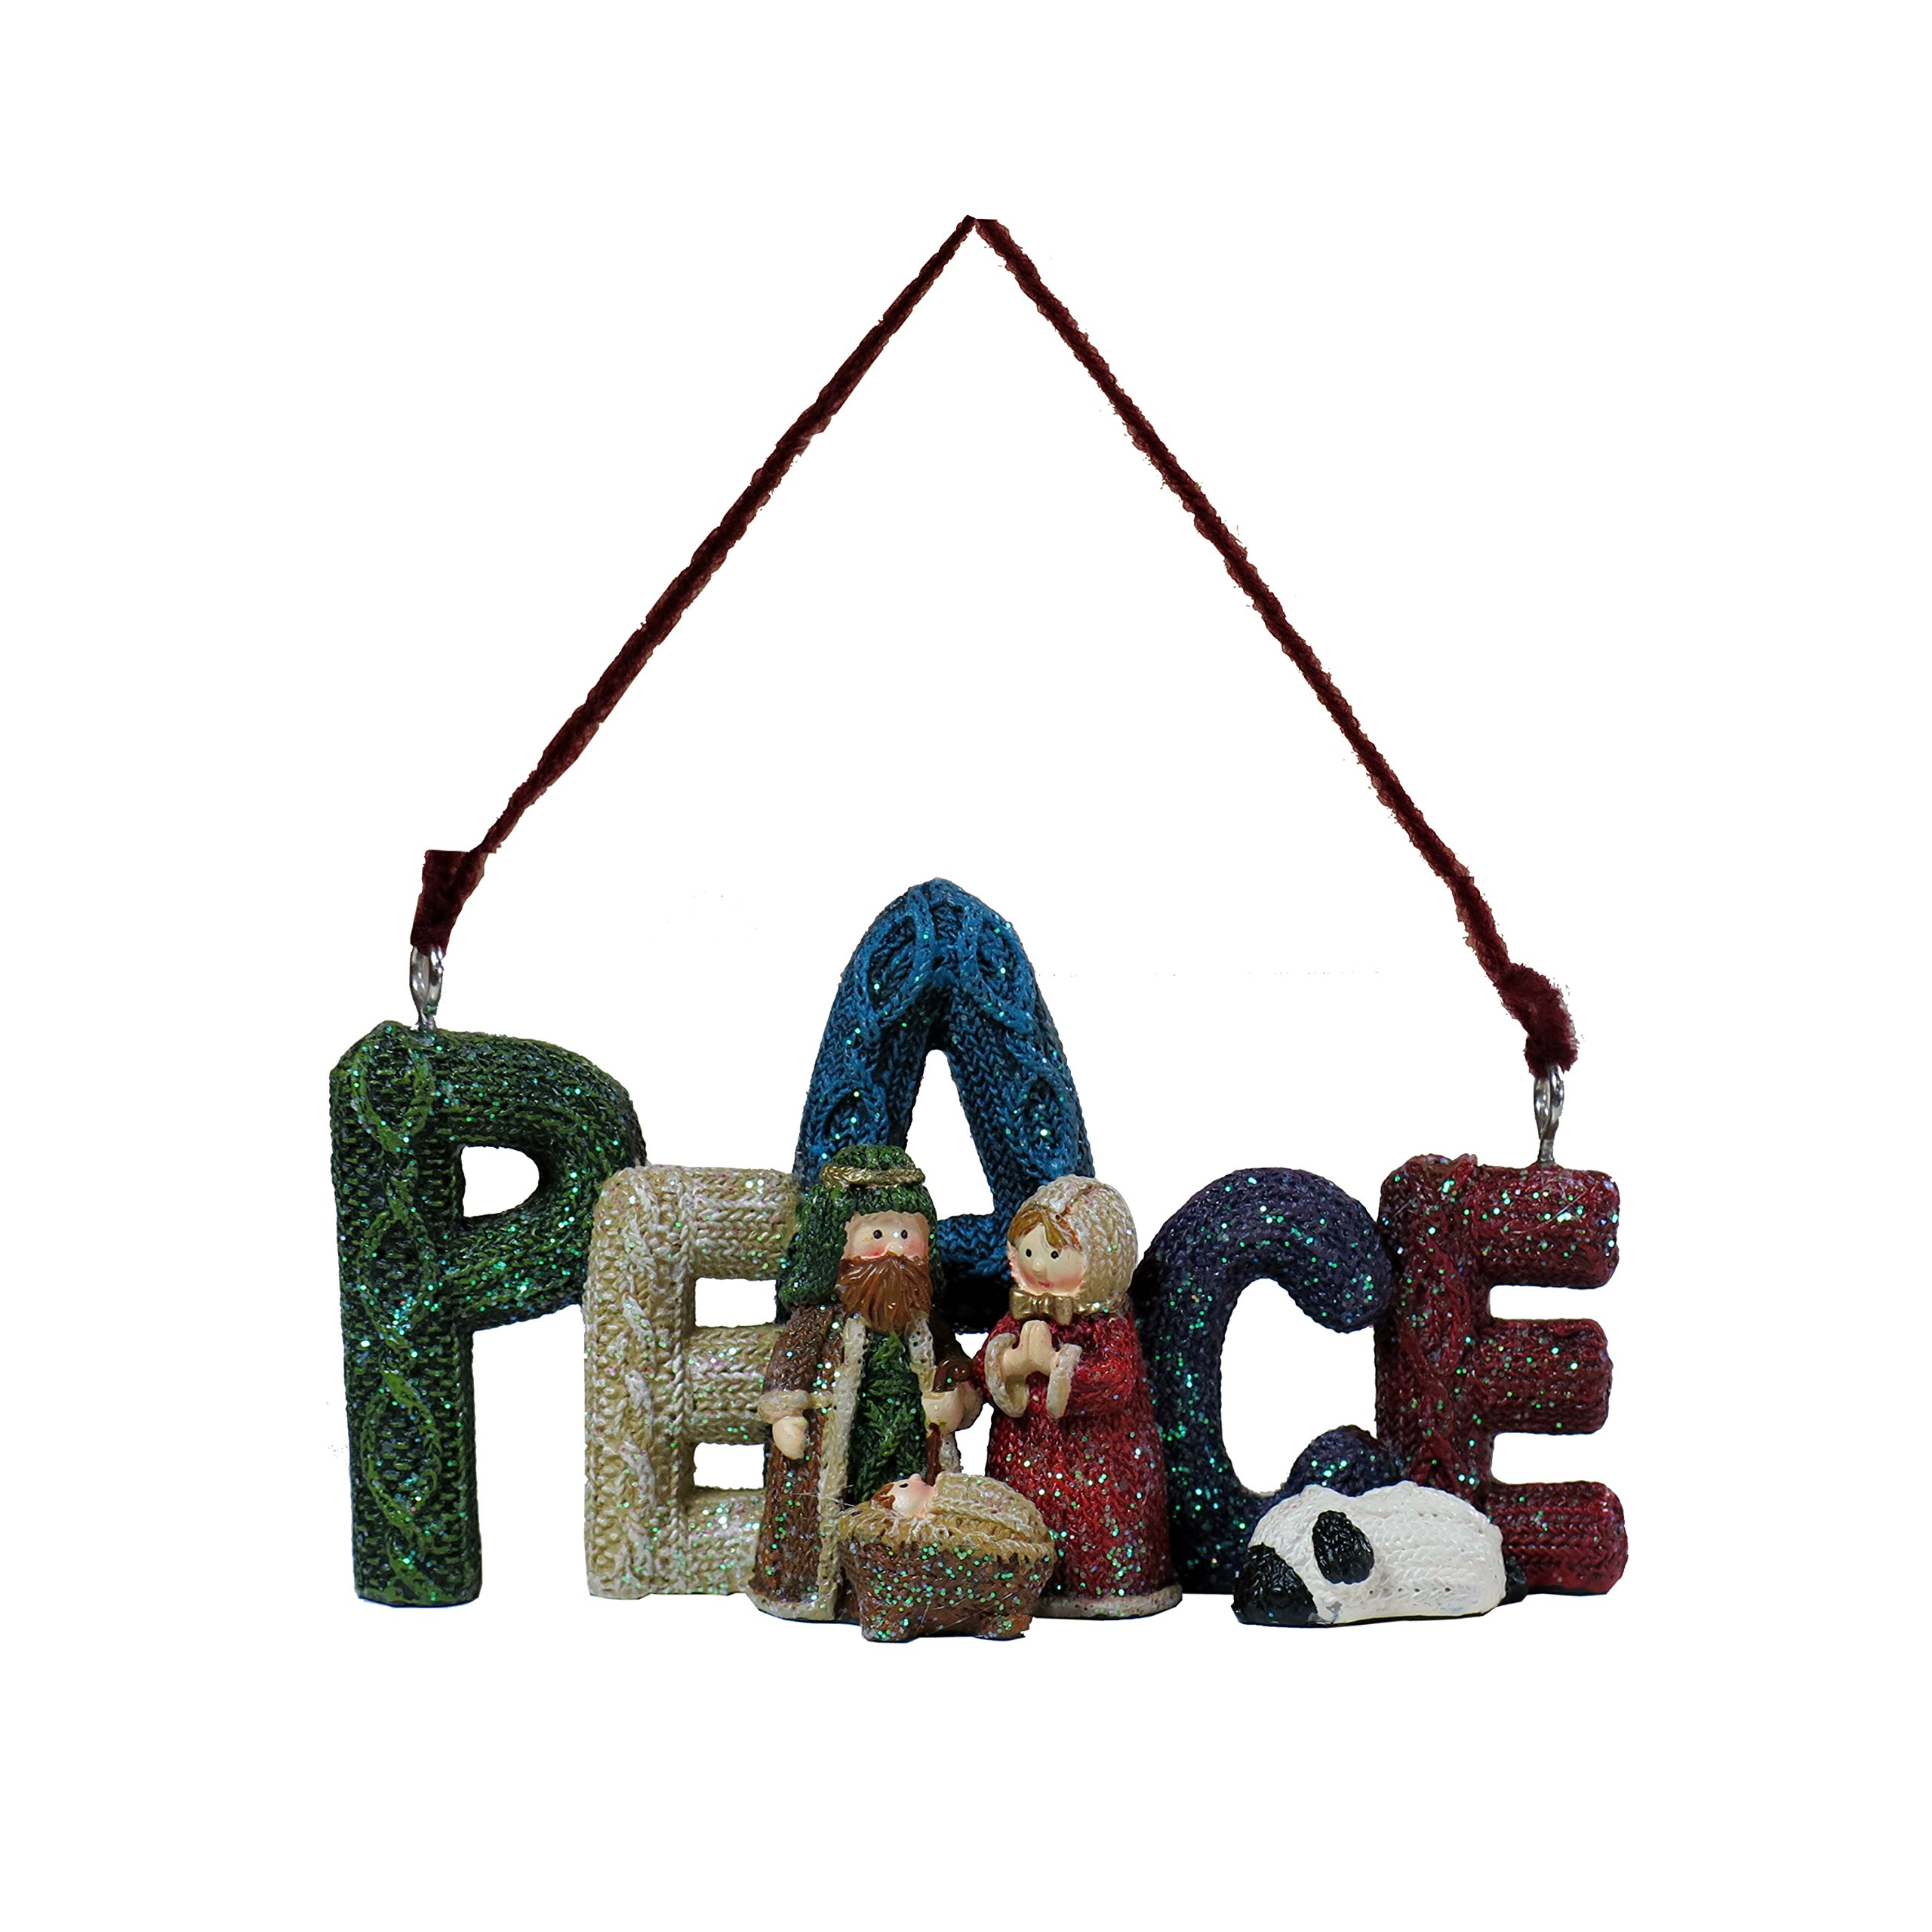 Lee's Home Nativity Knitting Finish ''Peace'' with Holy Family Ornament by Lee's Home